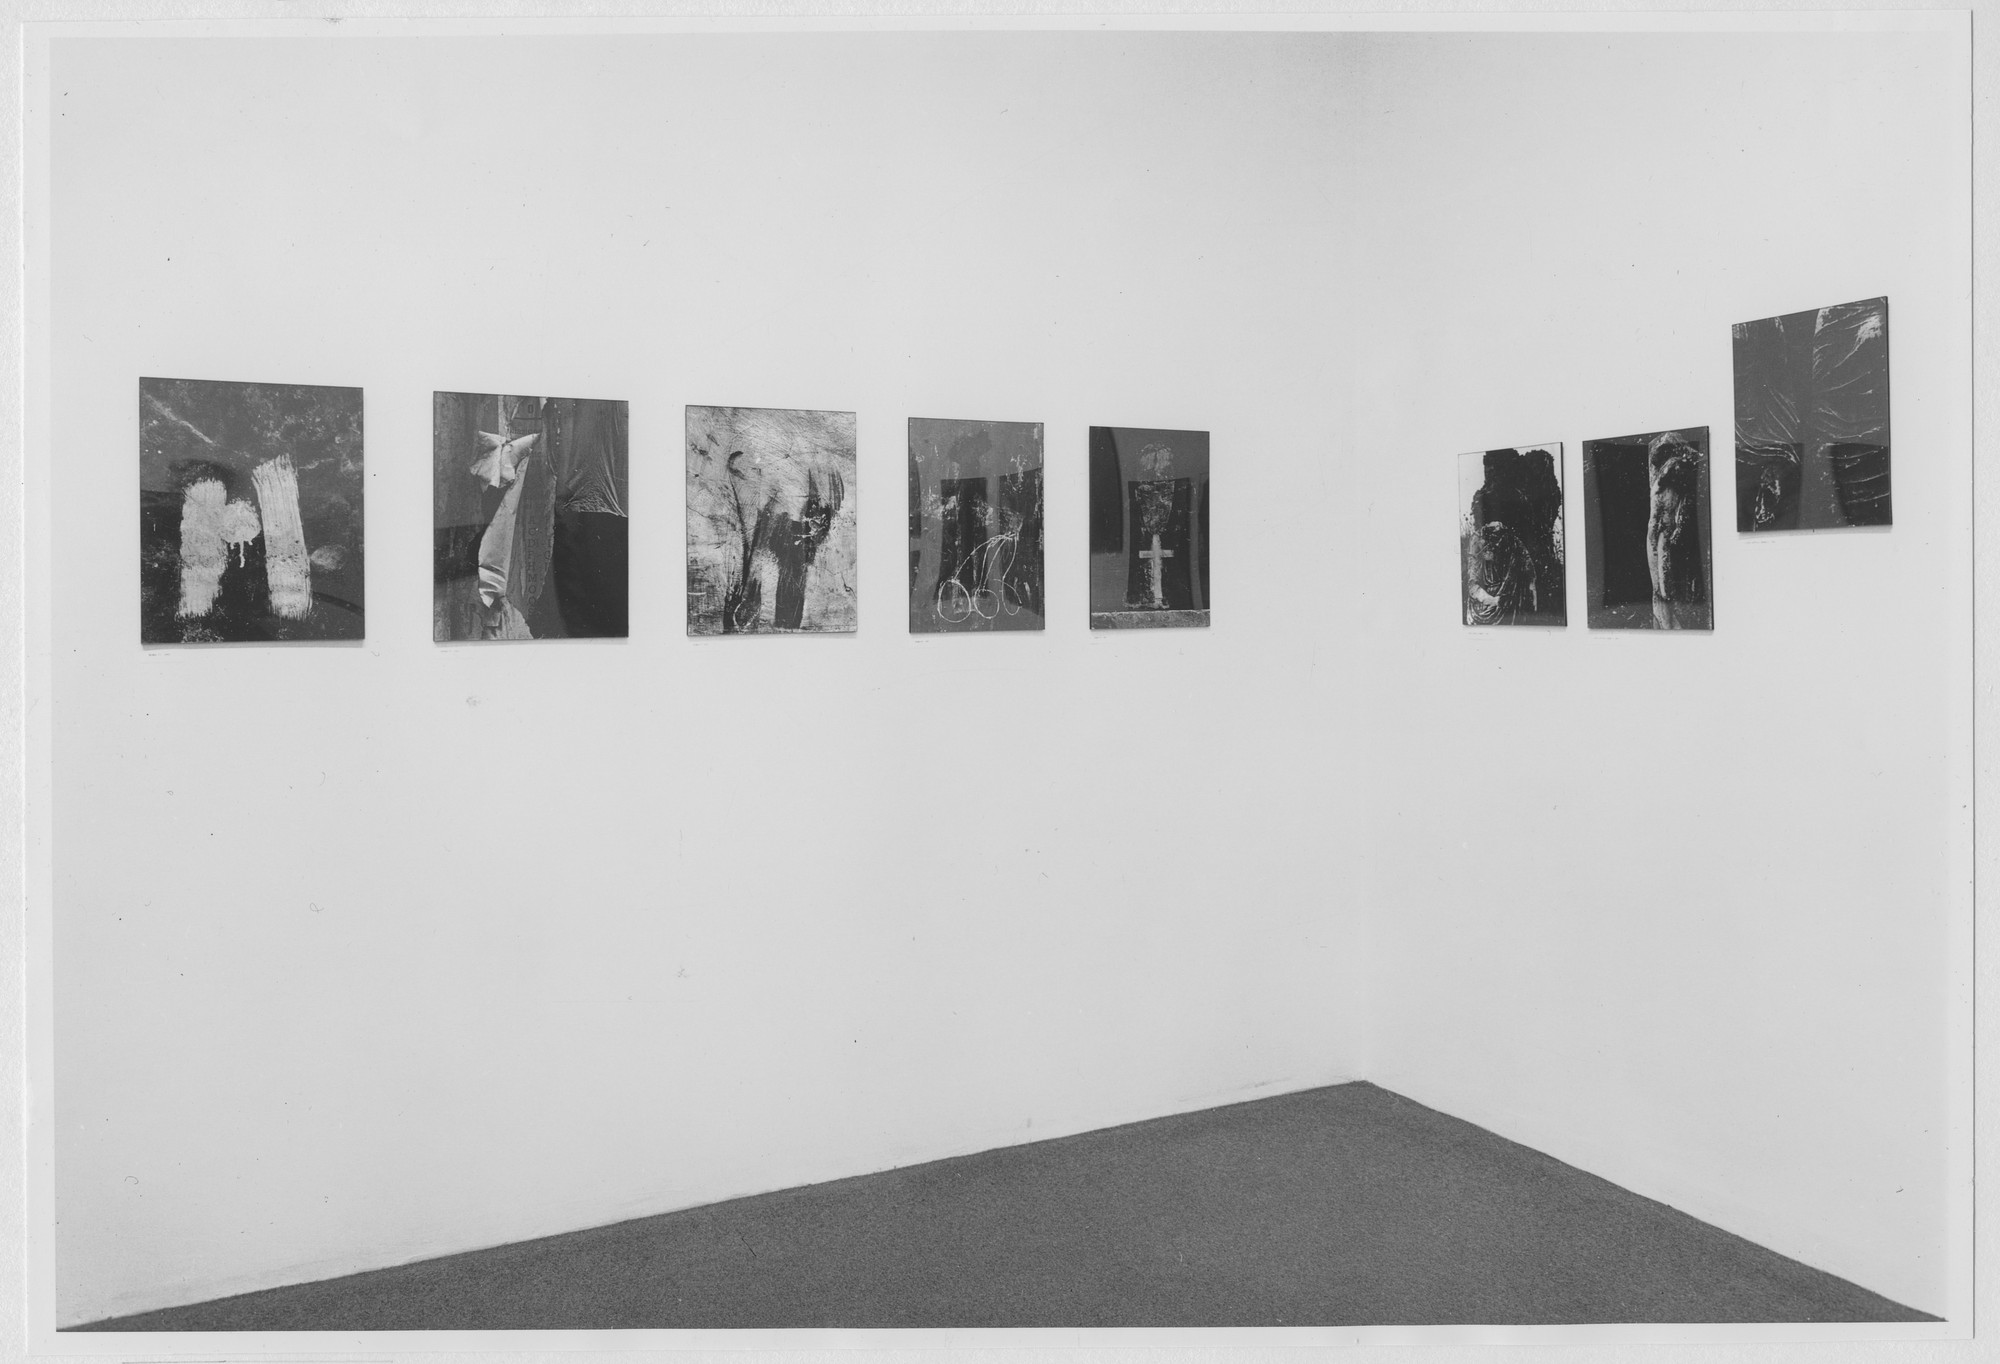 "Installation view of the exhibition, ""Siskind Recently."" May 5, 1965–June 27, 1965. Photographic Archive. The Museum of Modern Art Archives, New York. IN765.1. Photograph by Rolf Petersen."